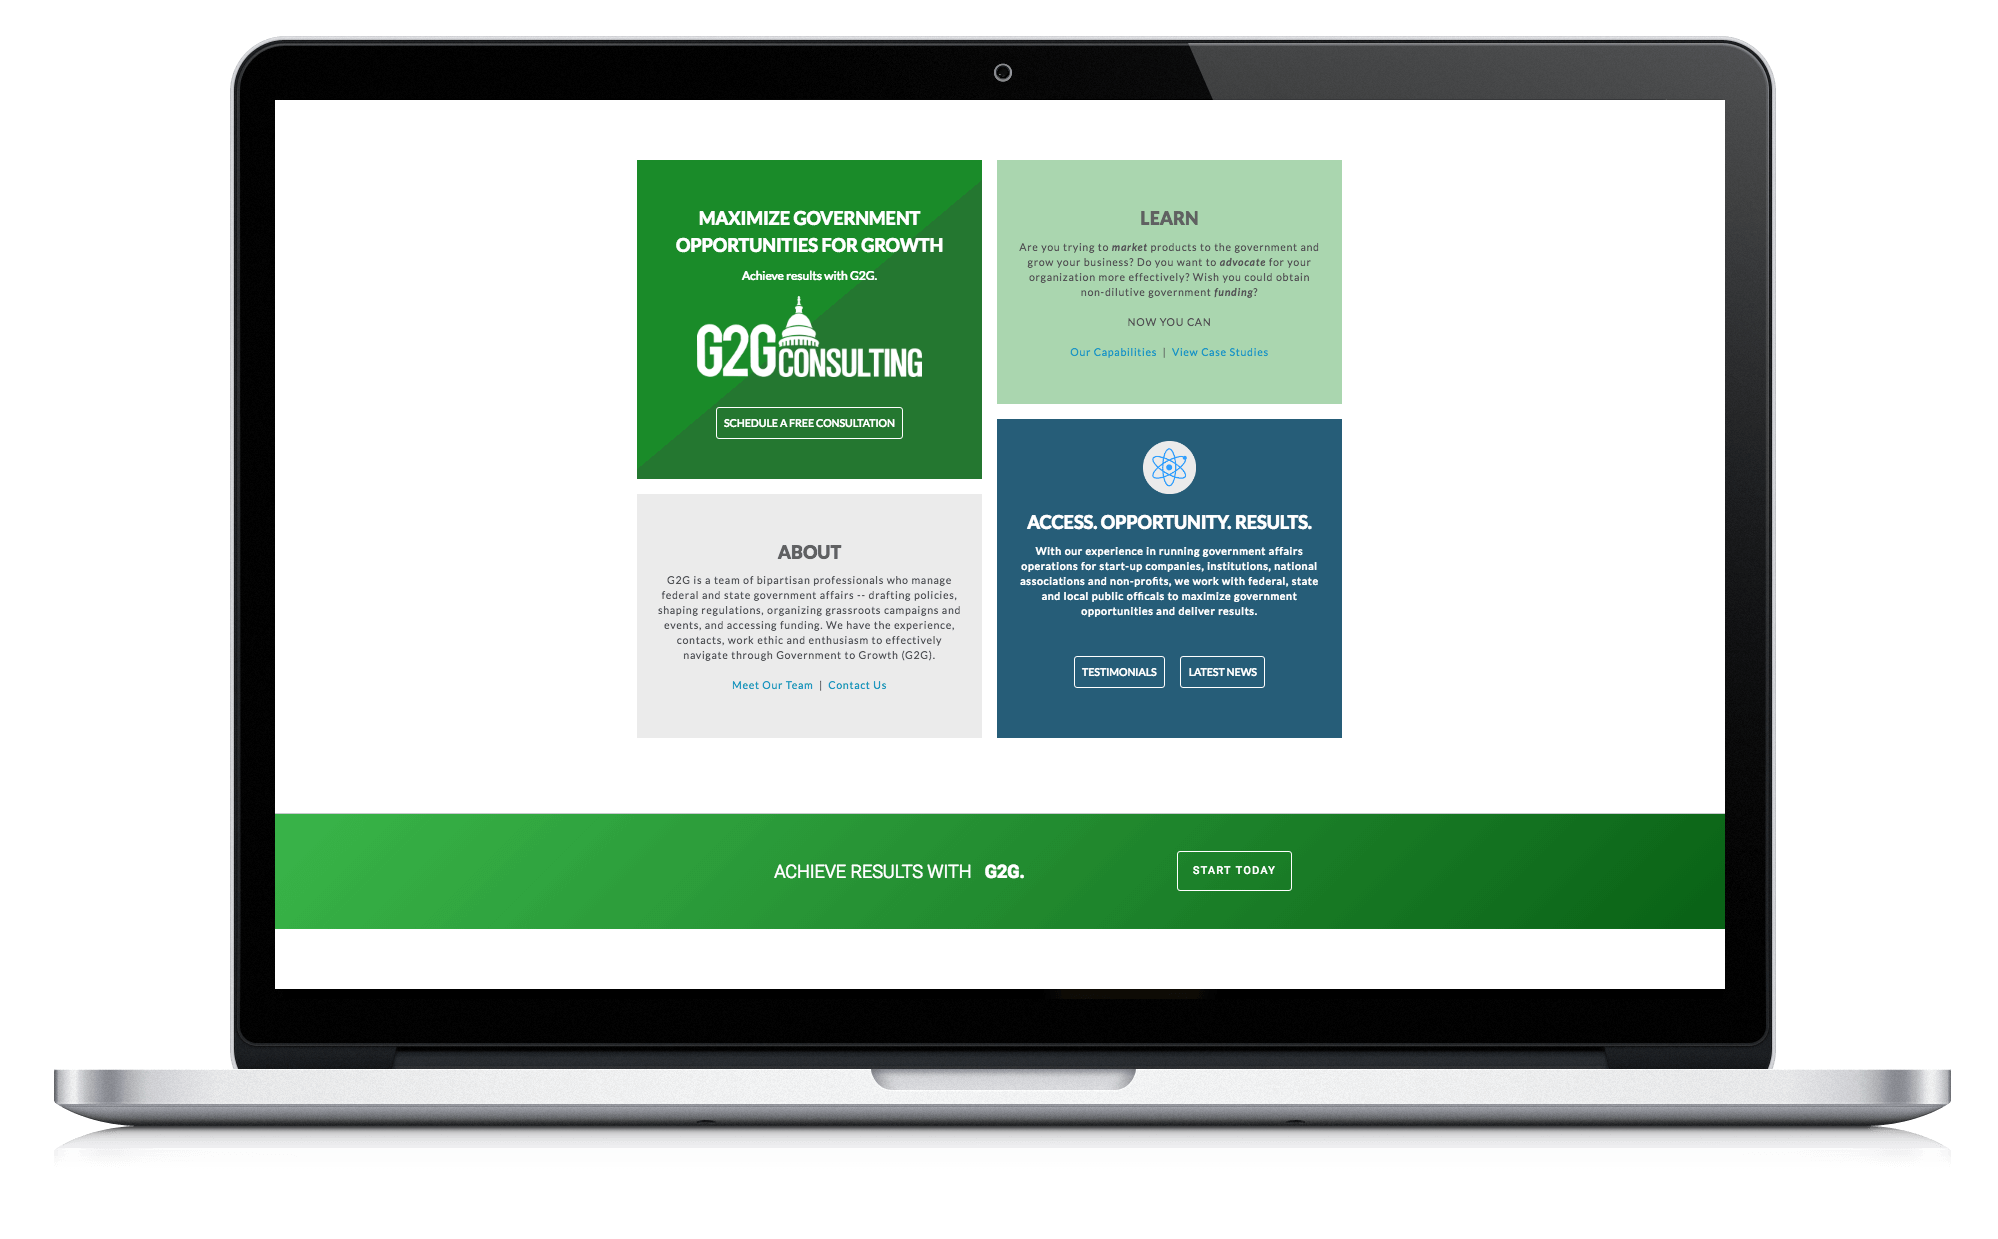 Image of responsive web design case study by Quetra Creative for G2G Consulting on a Macbook Pro